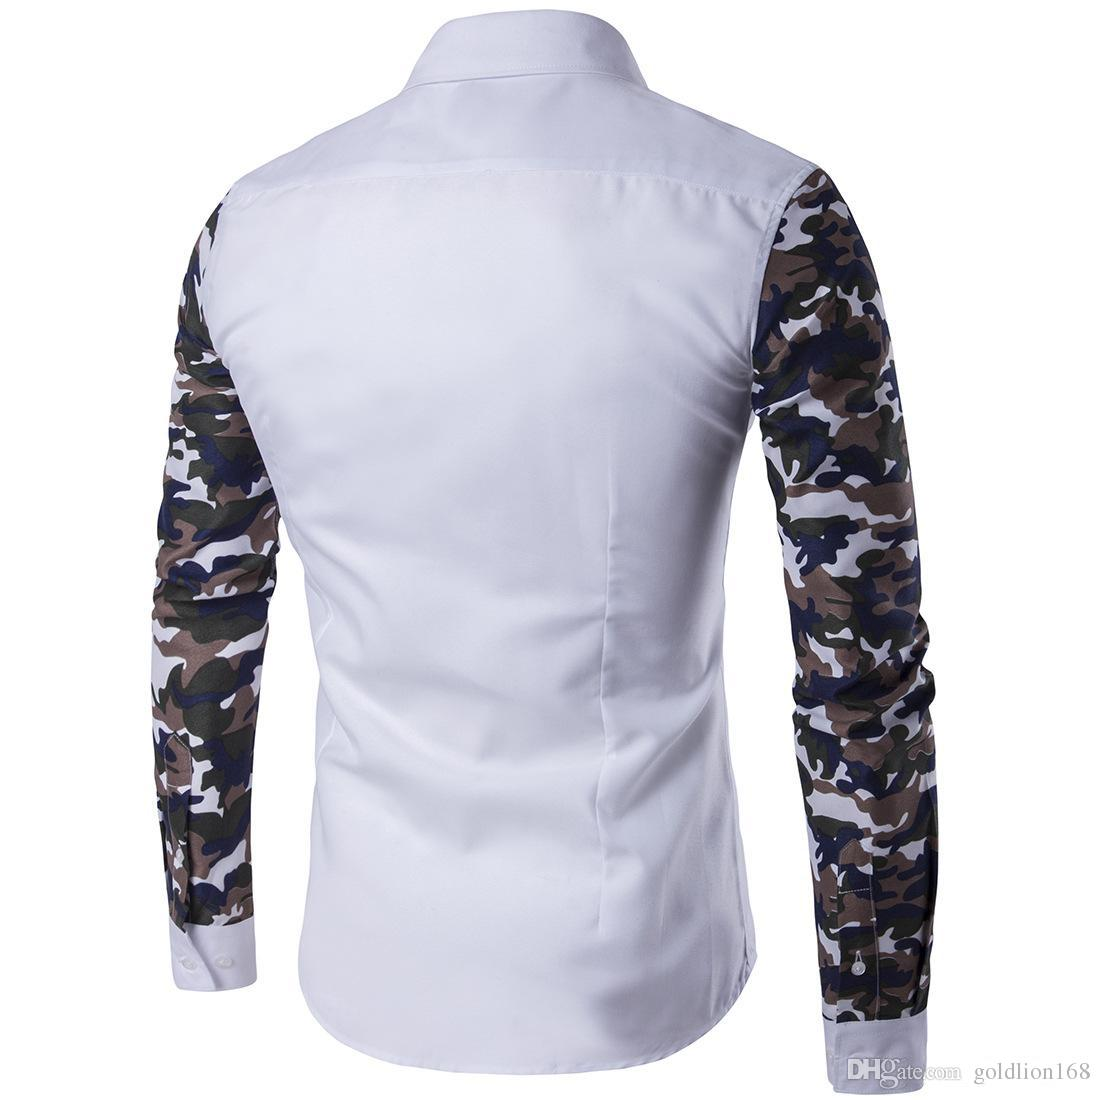 Mens Camouflage Long Sleeve Shirt 2016 Fall Hot Selling Blue White Military Style Contrast Camo Print Casual Shirt